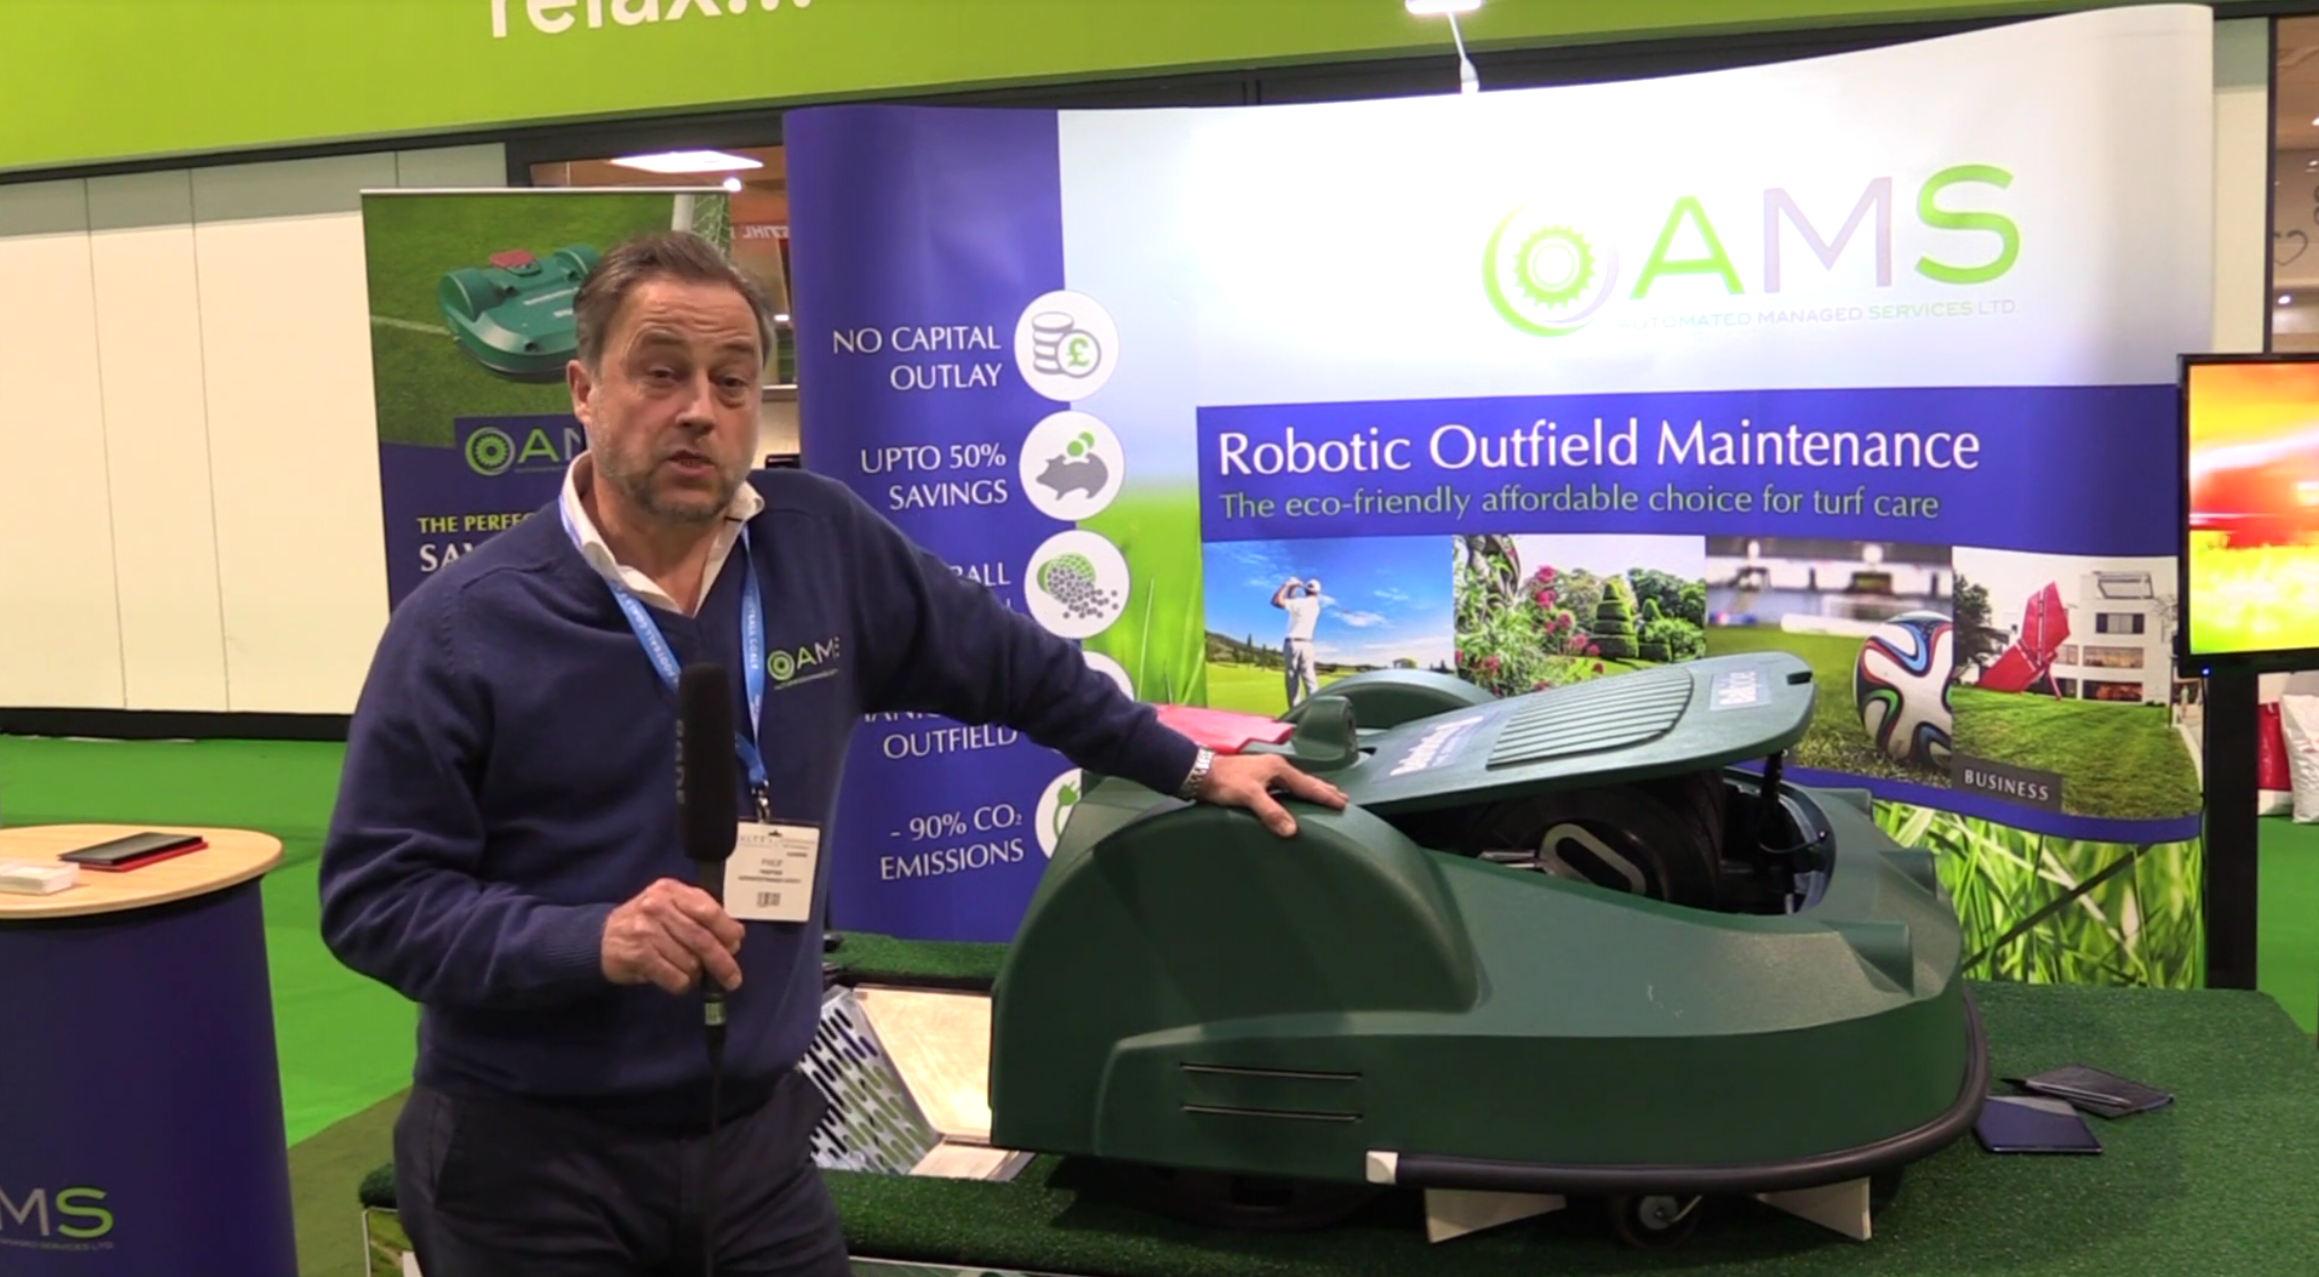 AMS robotics MD Philip Sear discussing the robots at Saltex 2018